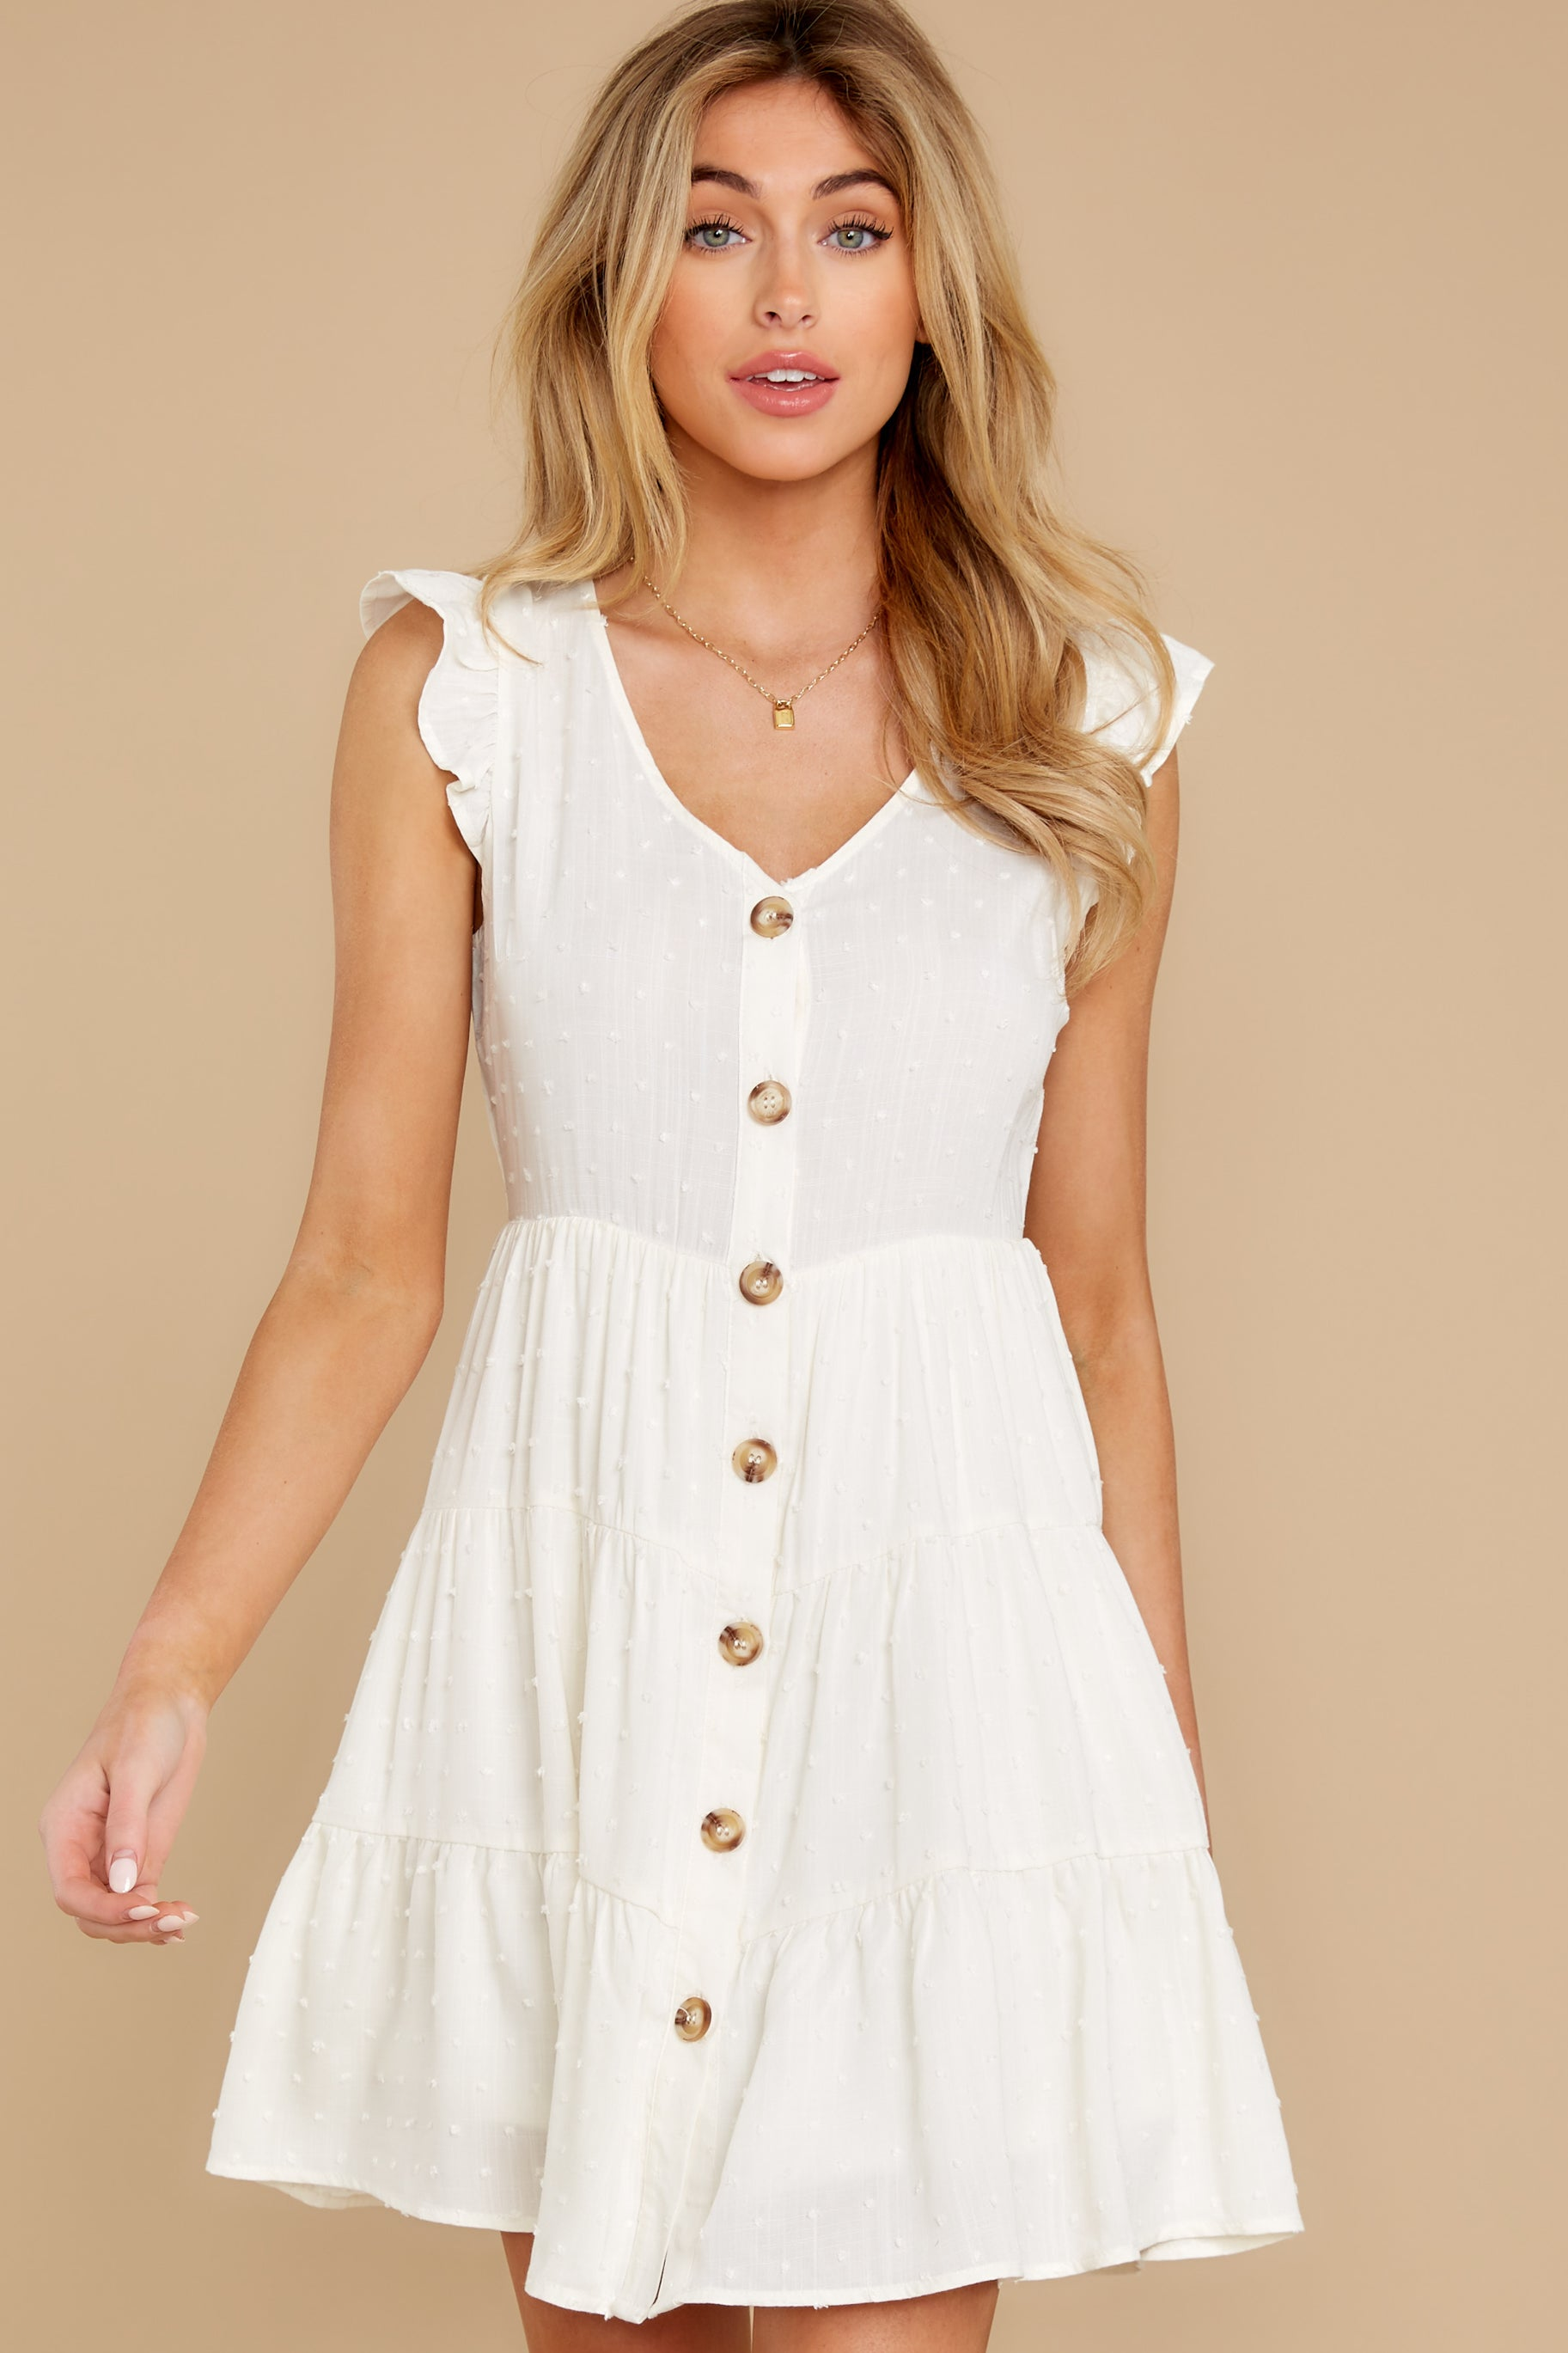 7 With Promises White Dress at reddress.com